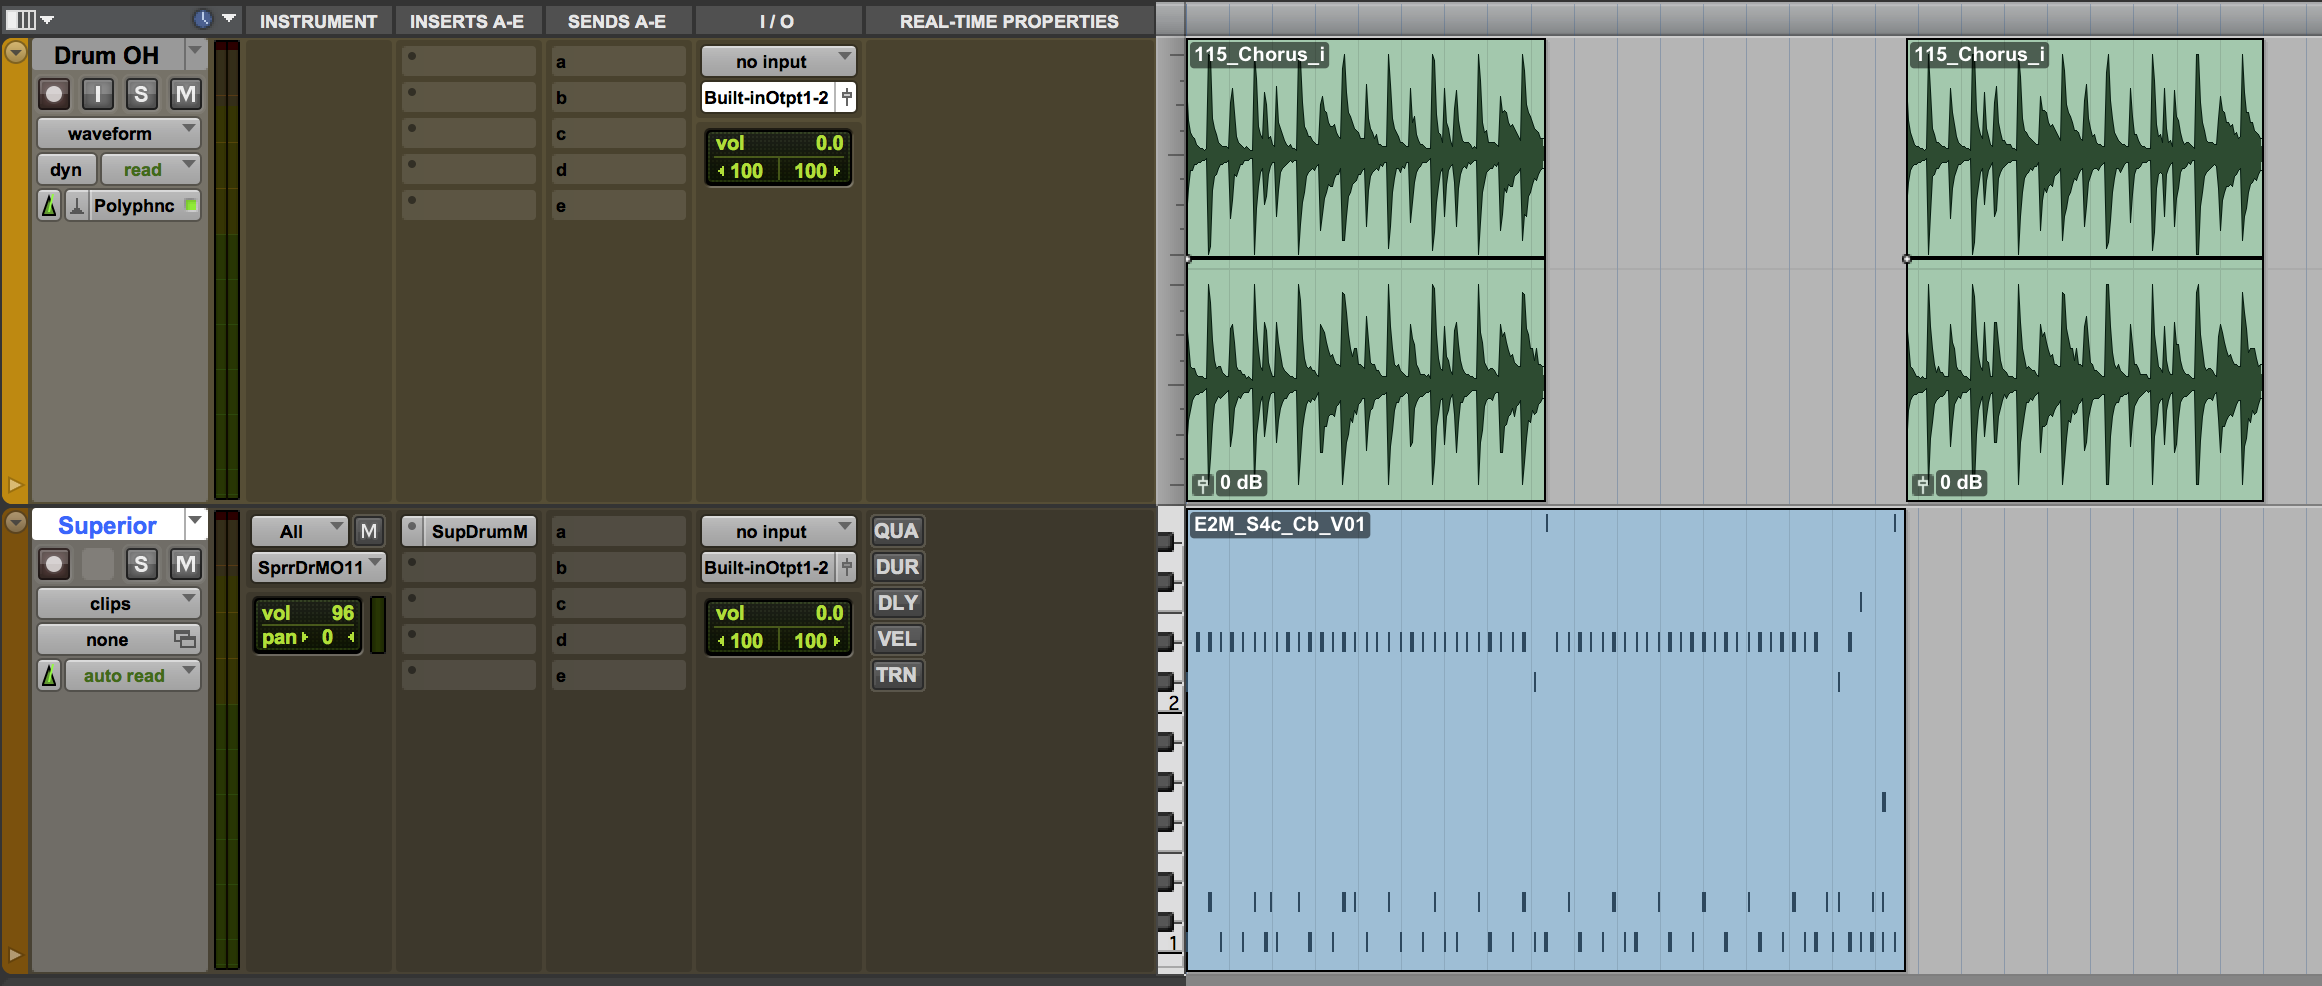 The session in Pro Tools 11.3